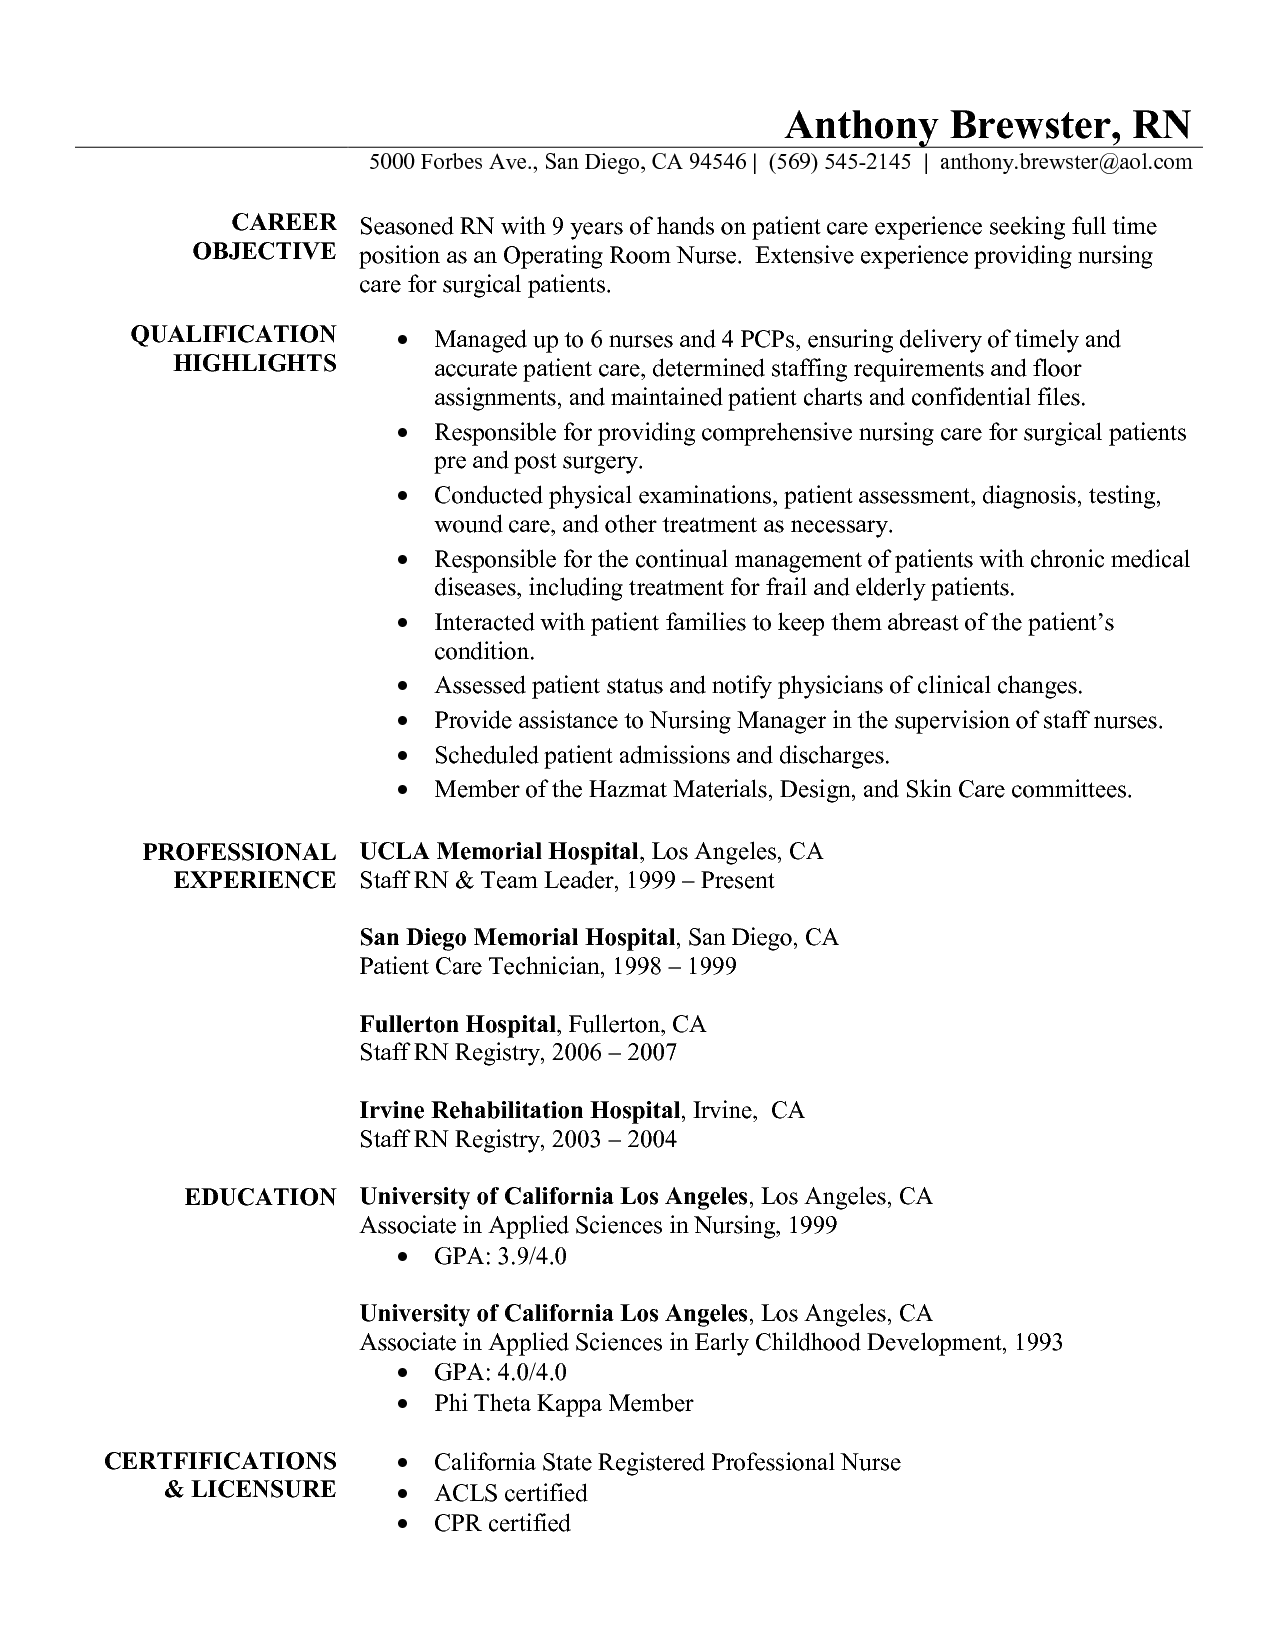 Example Of Professional Resume Curriculum Vitae Template Nurse  Google Search  Wade Resume